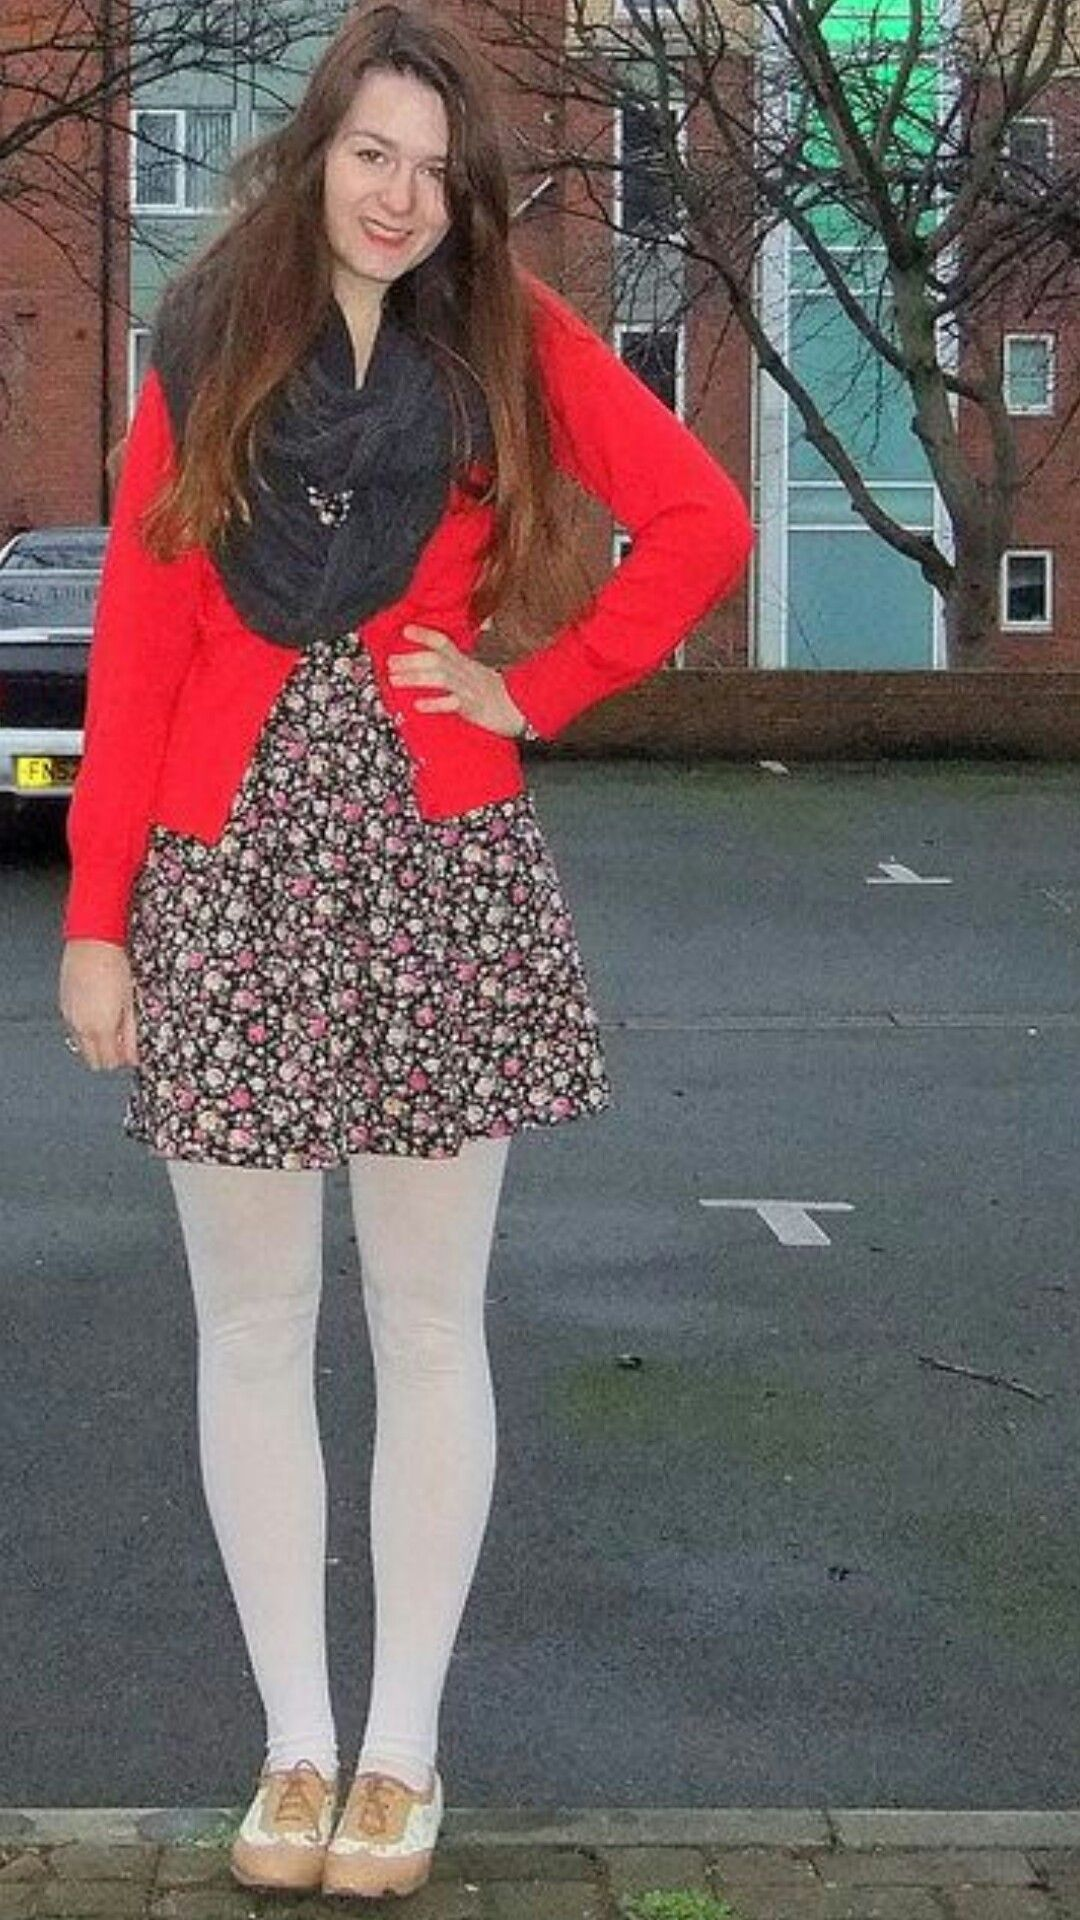 Red Cardigan Image By Colorful Mess